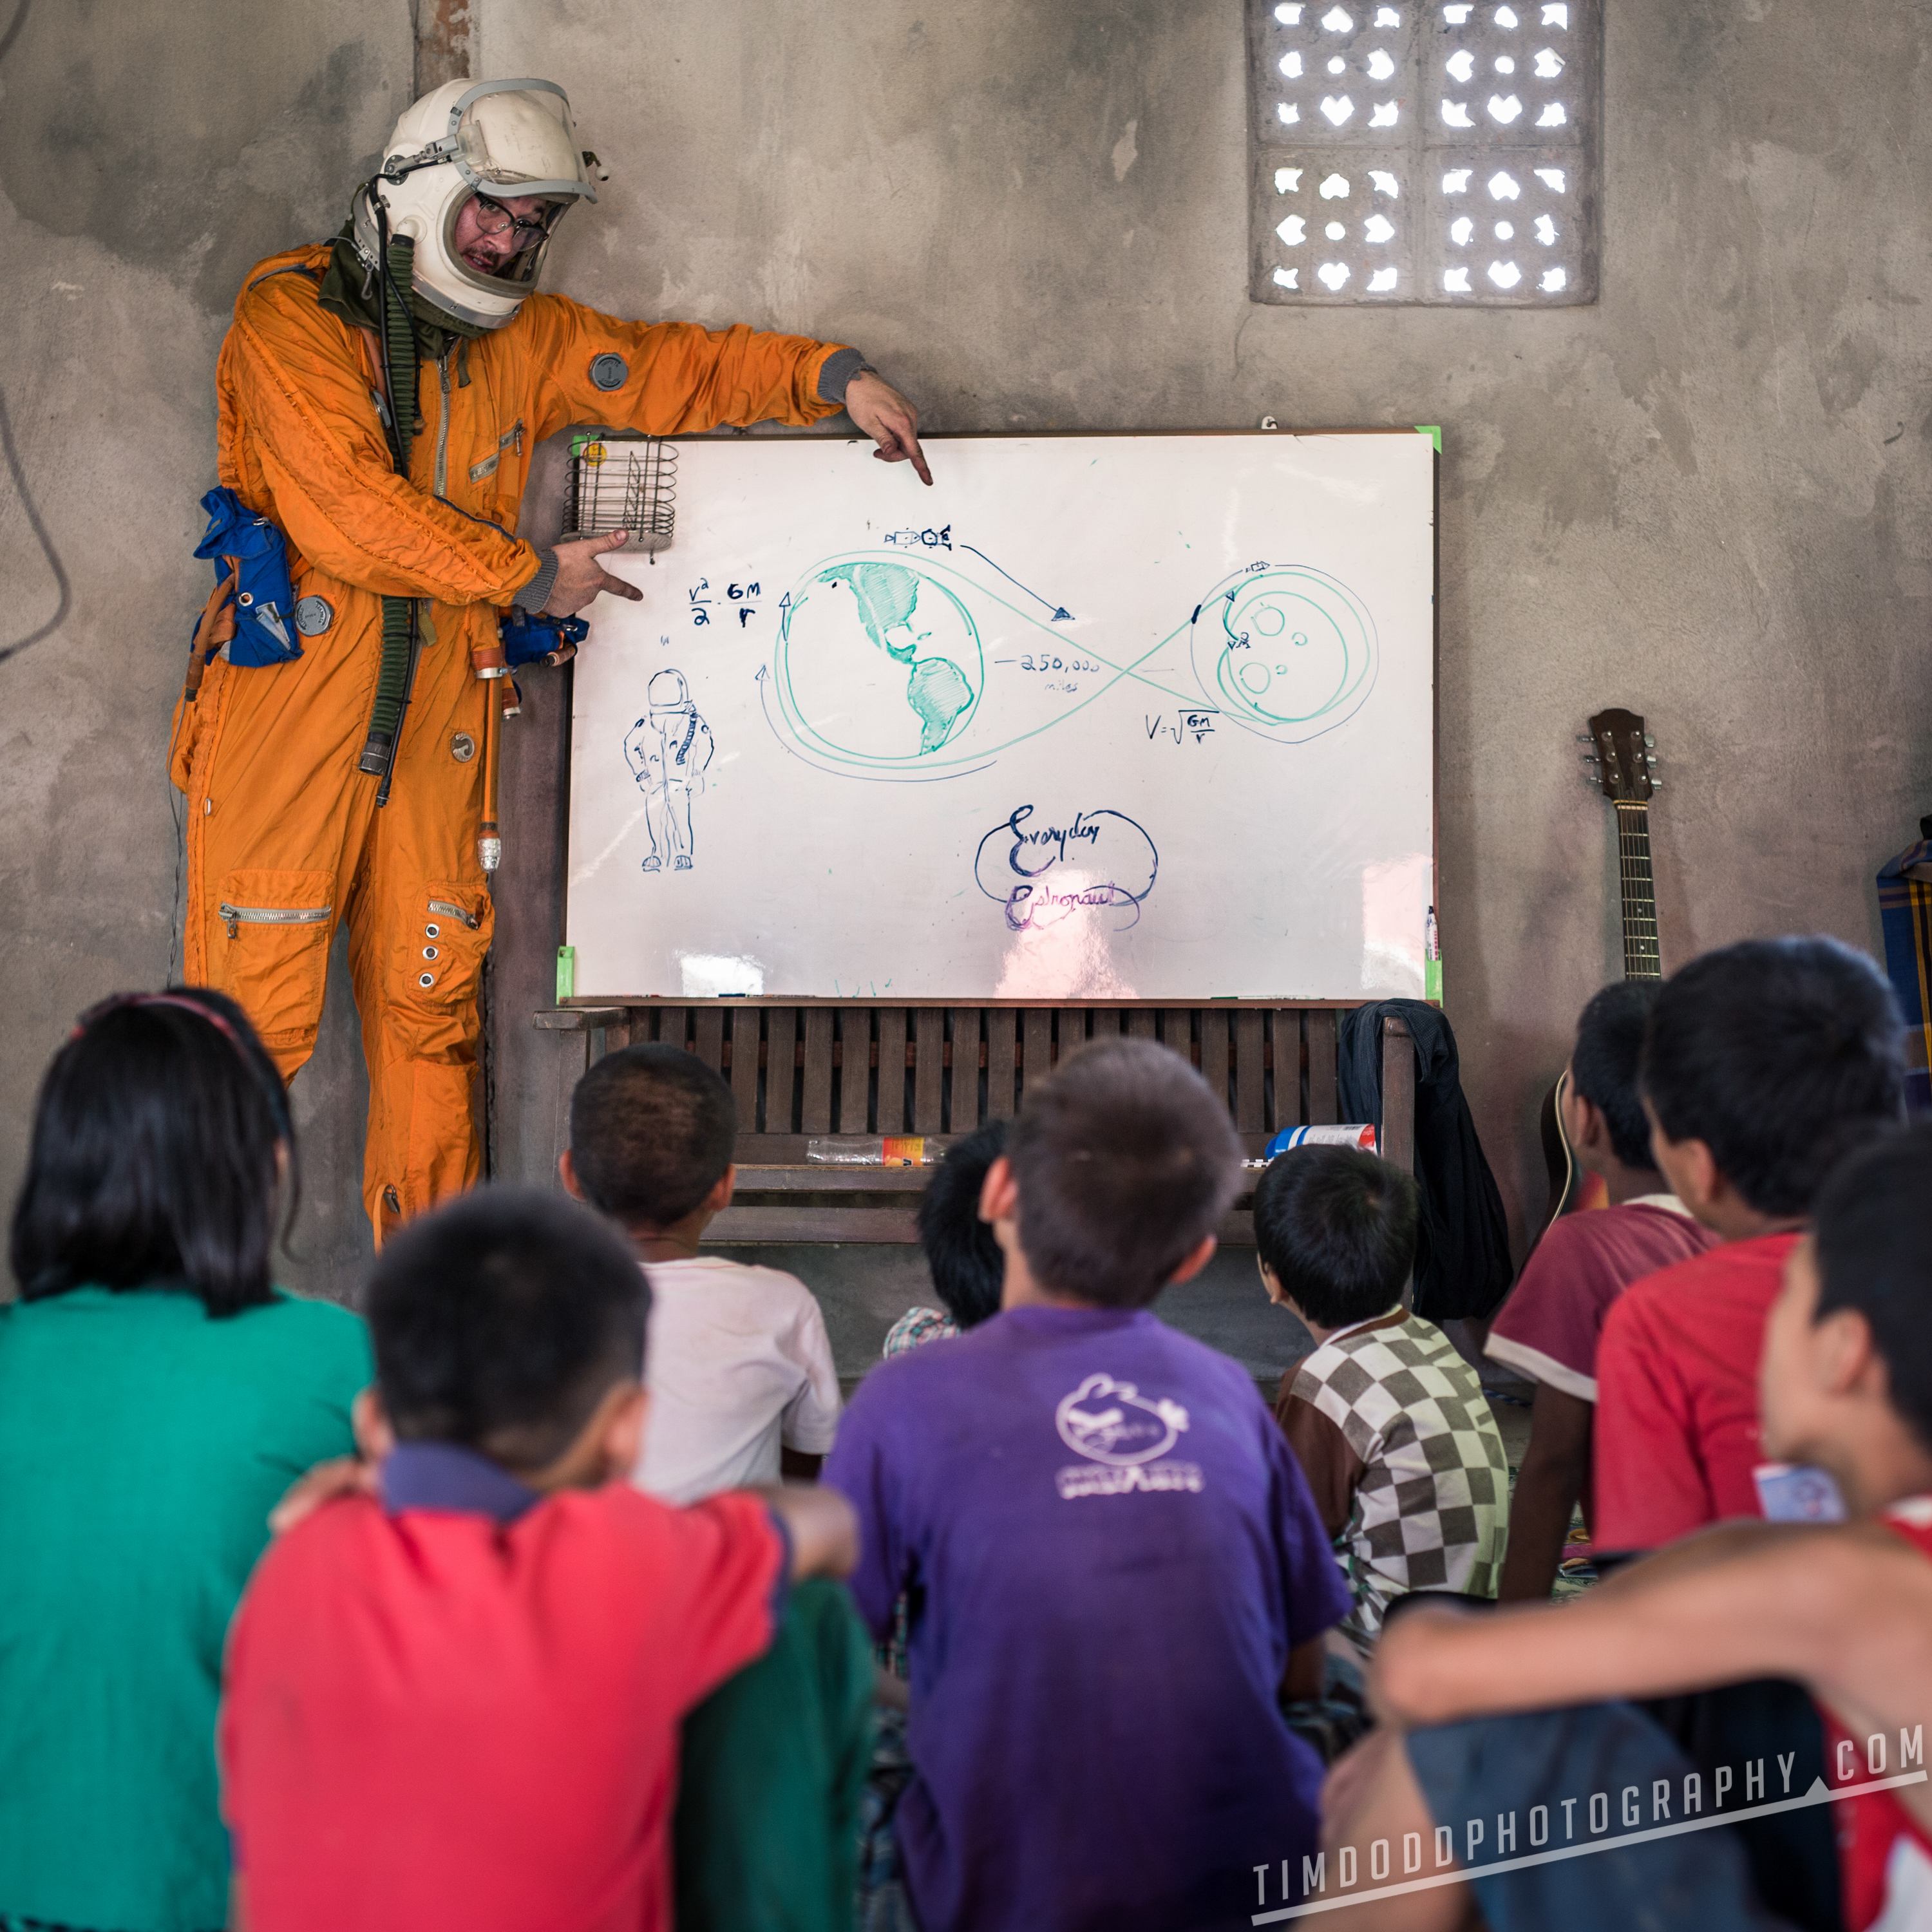 Myanmar Astronaut children home color flower gardens global populace mizuba tea company orphanage teaching english rocket science in asia by Tim Dodd Photography travel tourist tourism